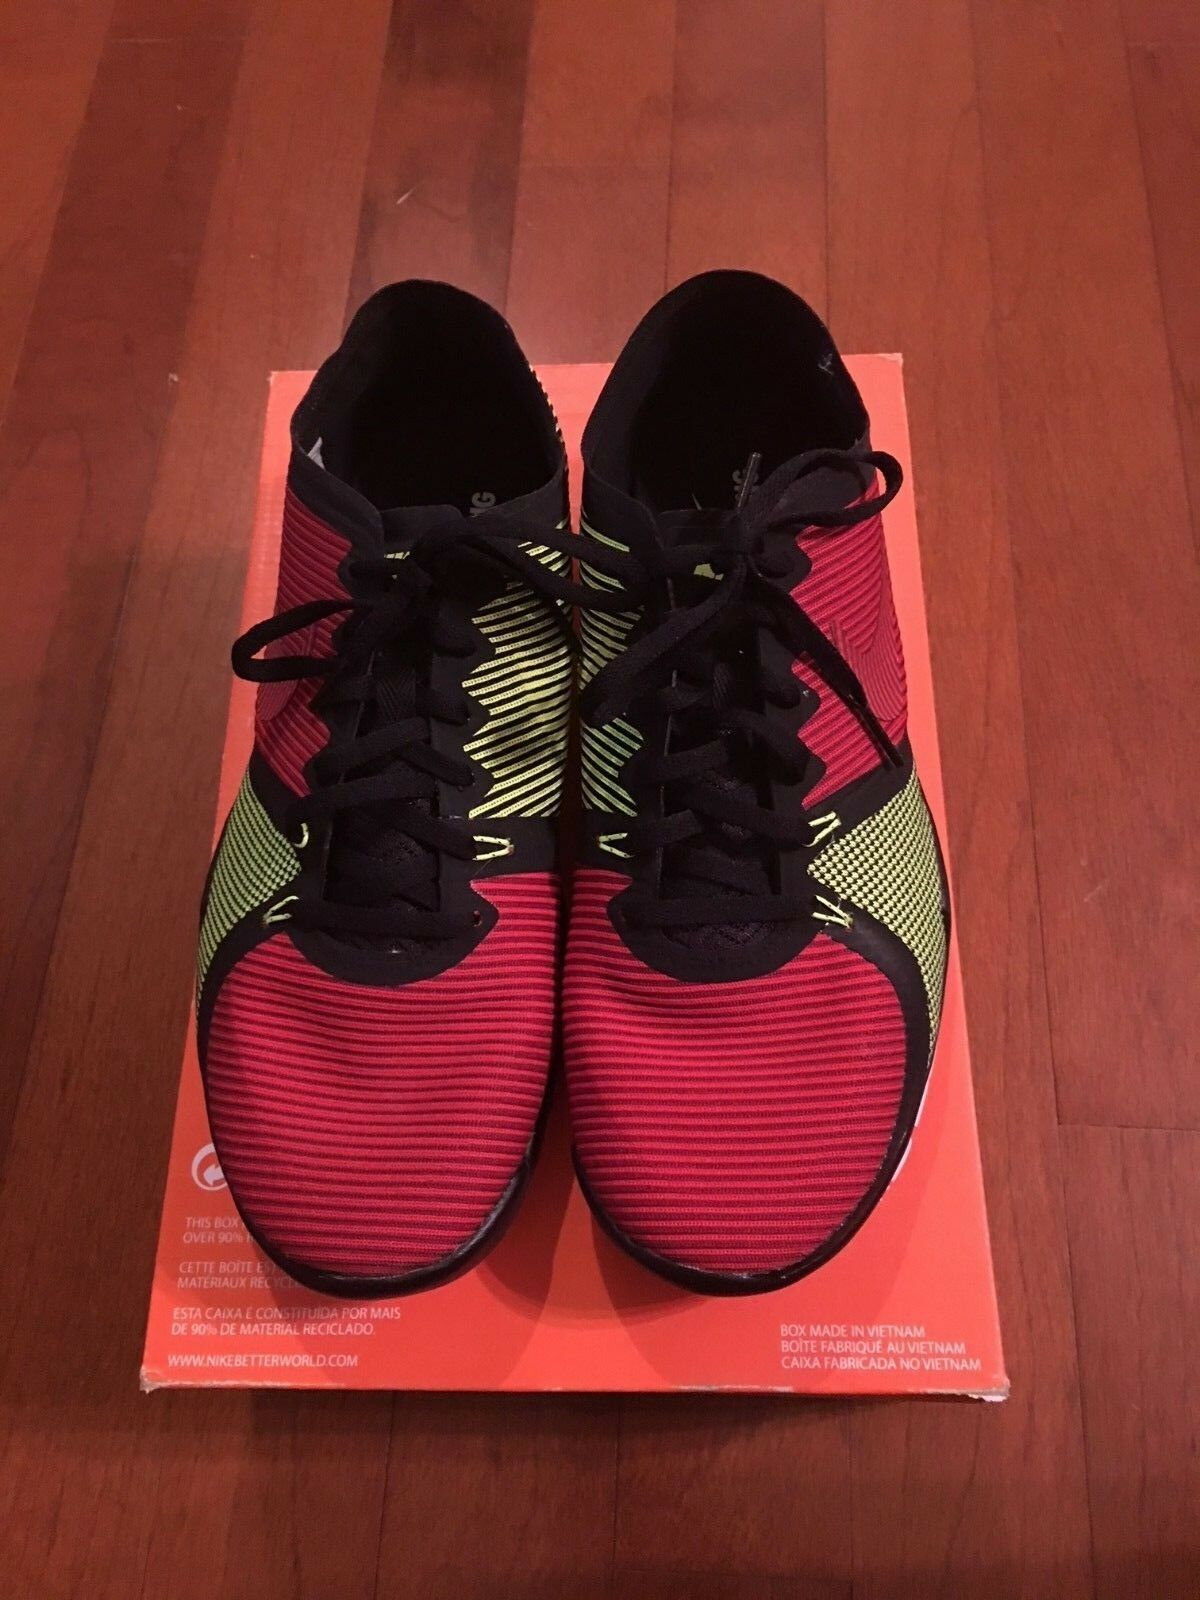 Nike Free Trainer 3.0 V4 Men's shoes Size 10 Red Yellow 749361 075 NEW In Box